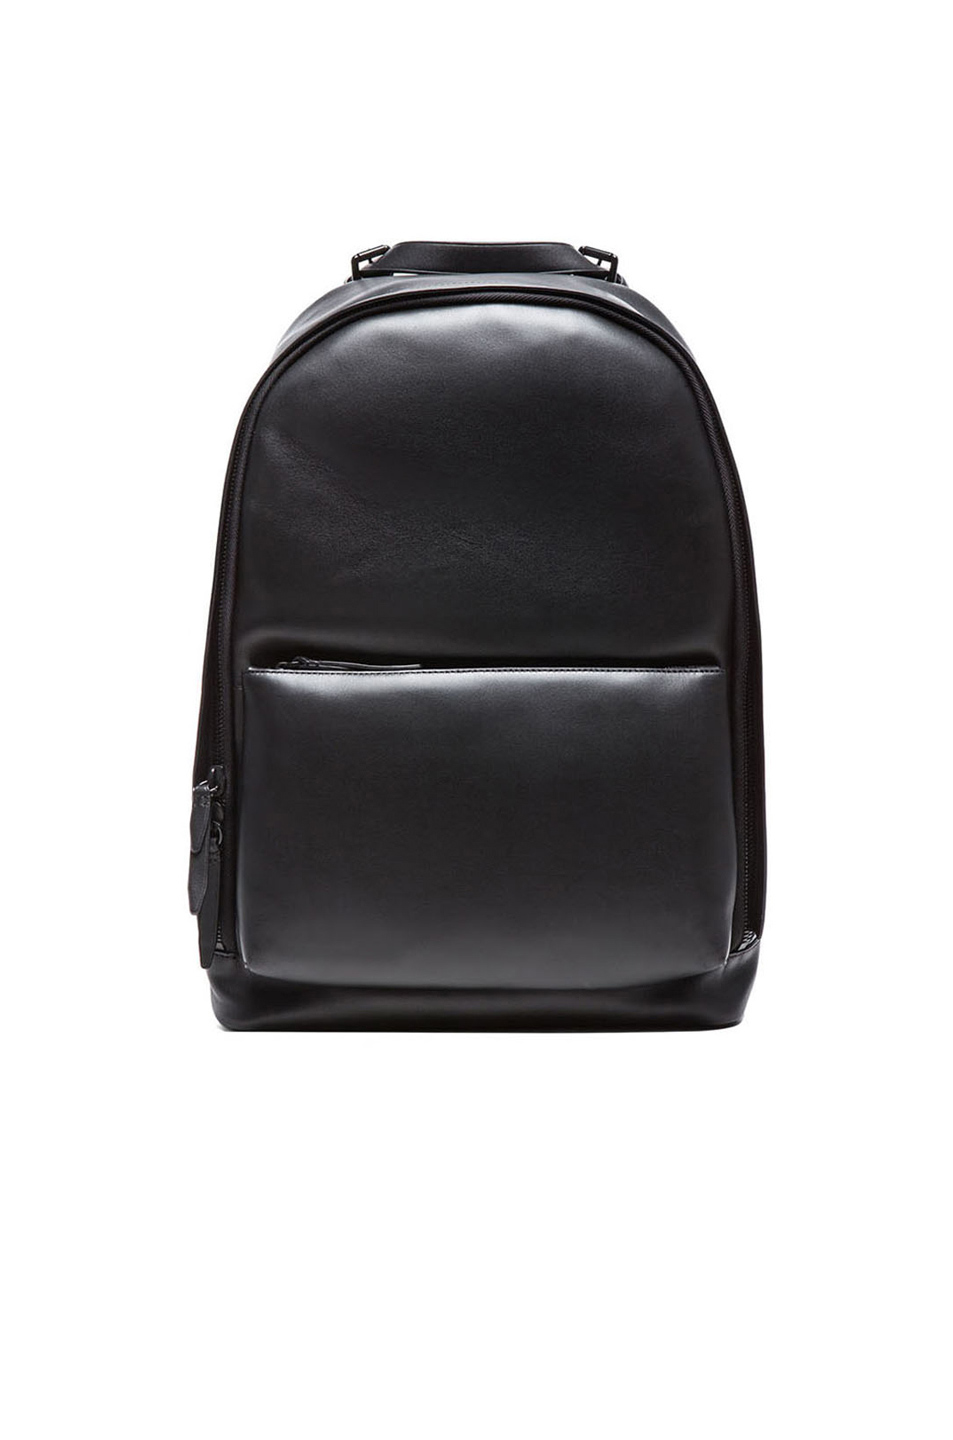 3.1 phillip lim 31 Hour Backpack in Black